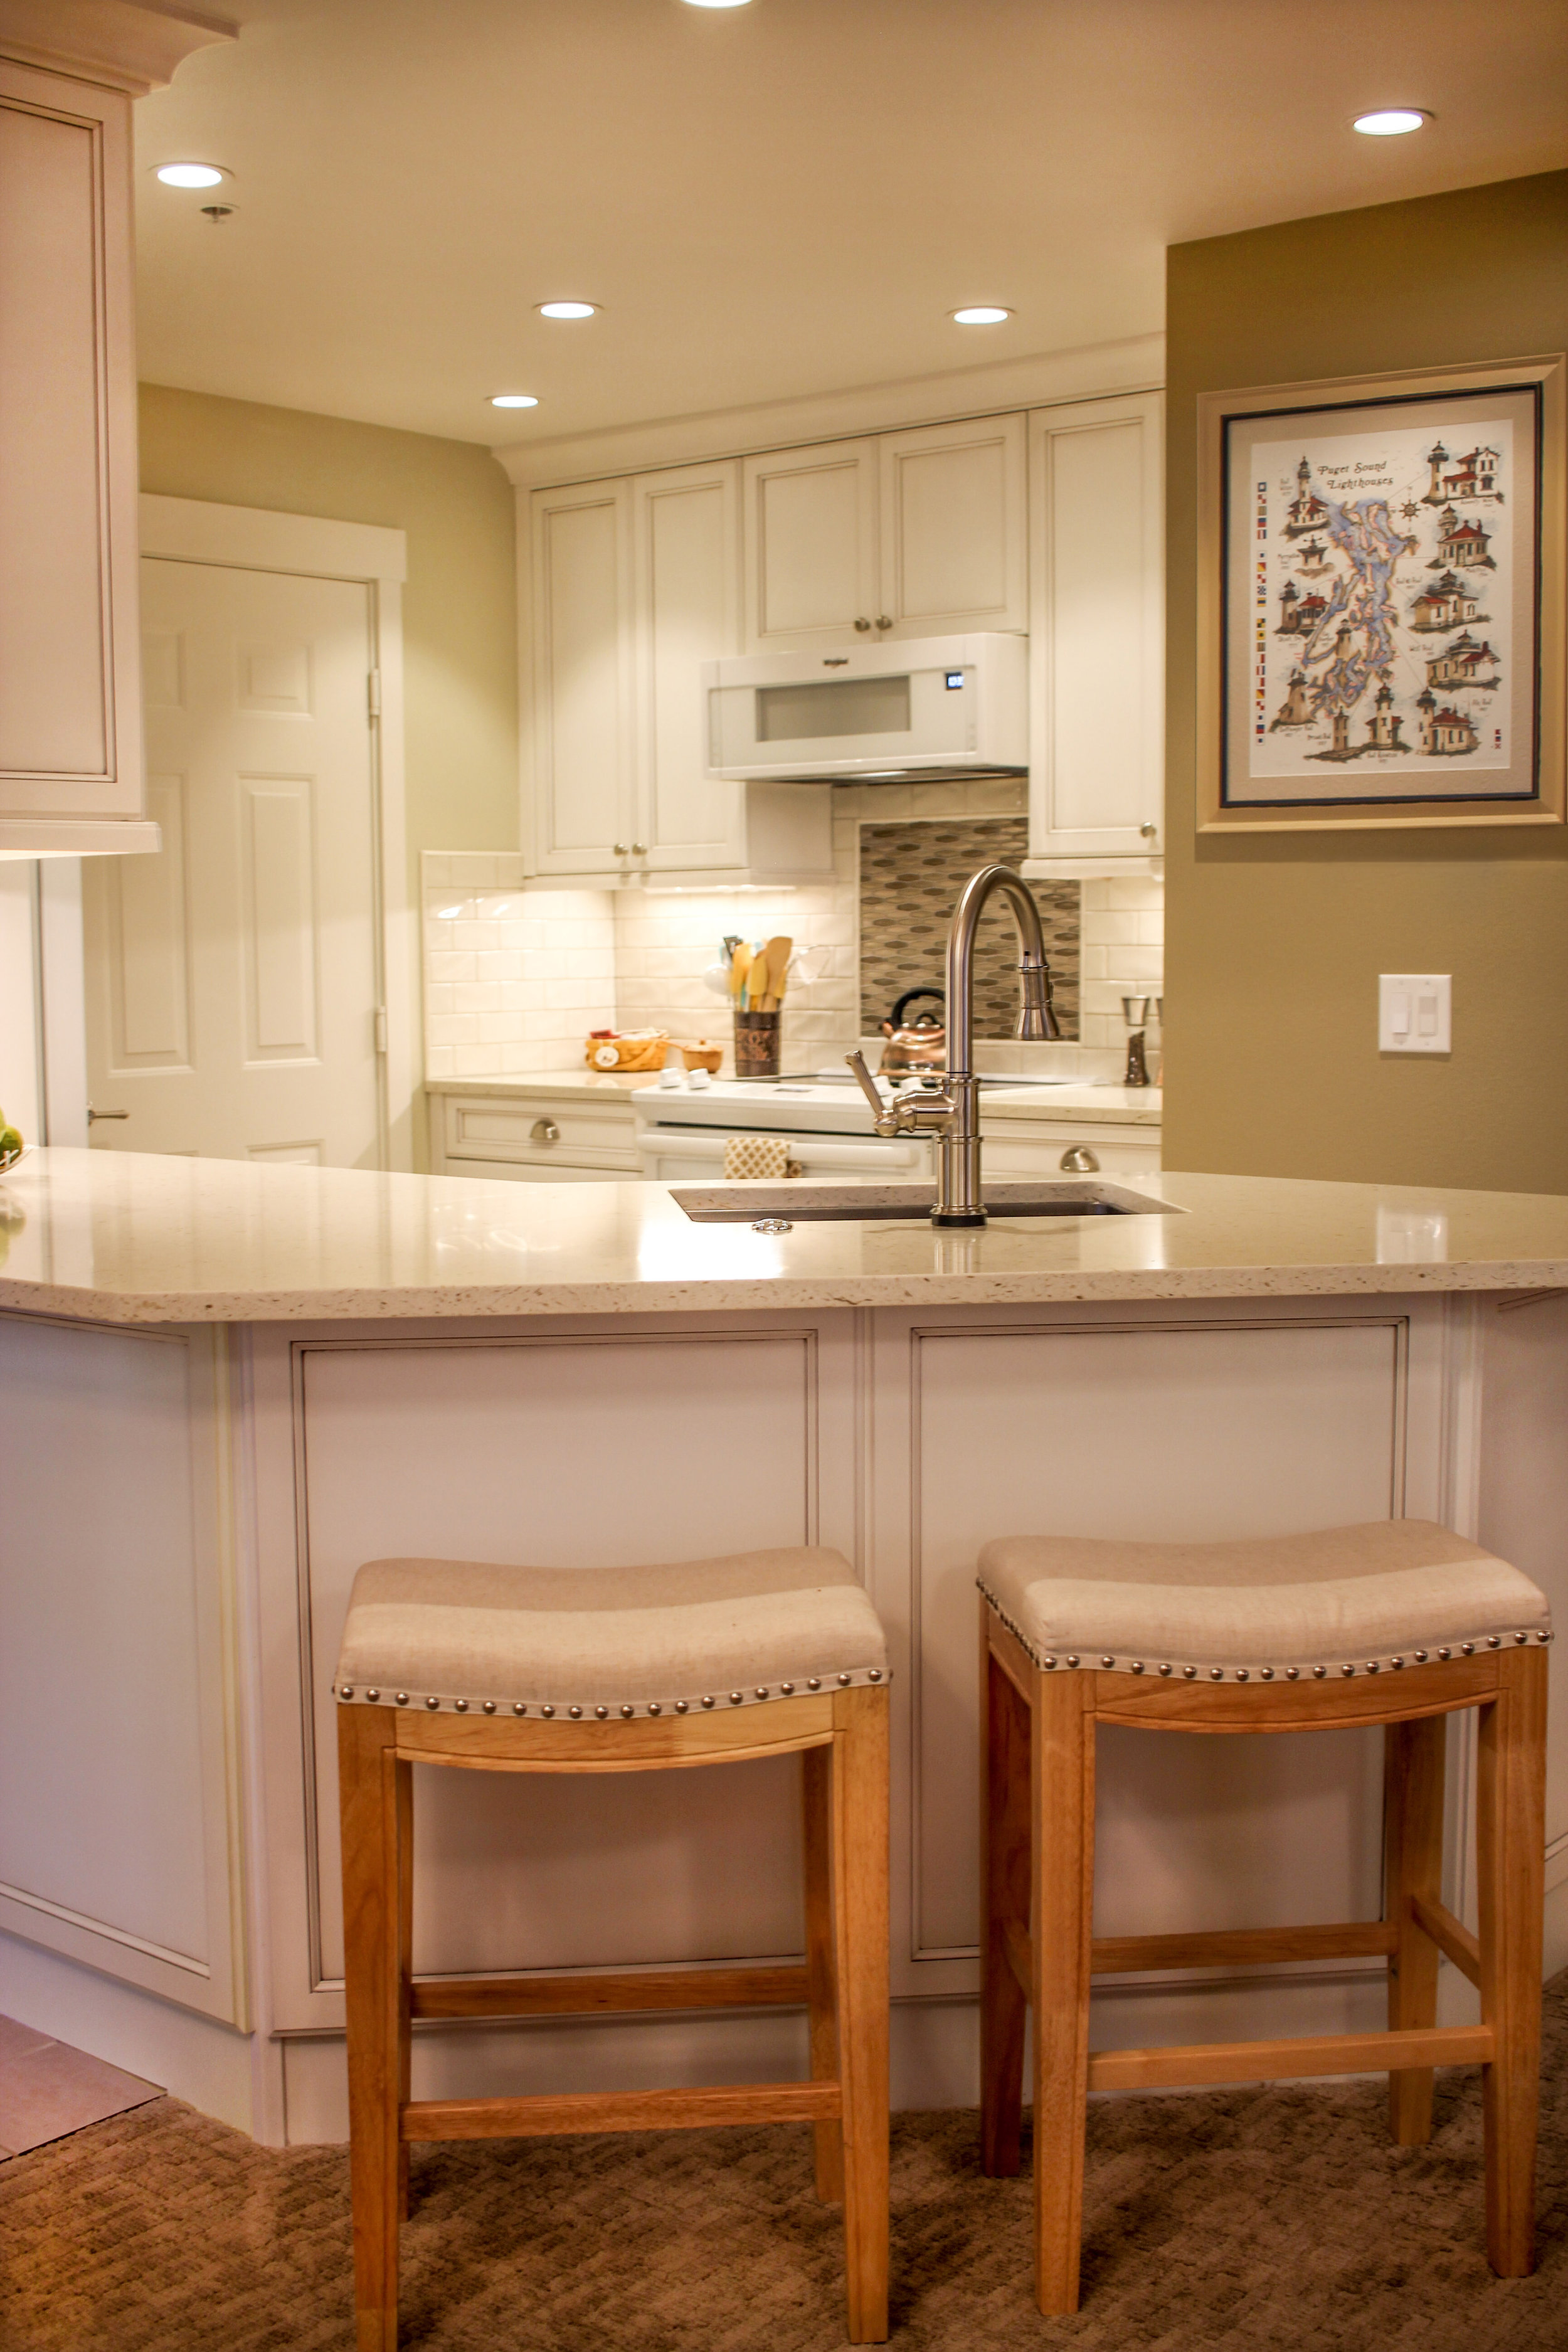 Small Kitchen Overview